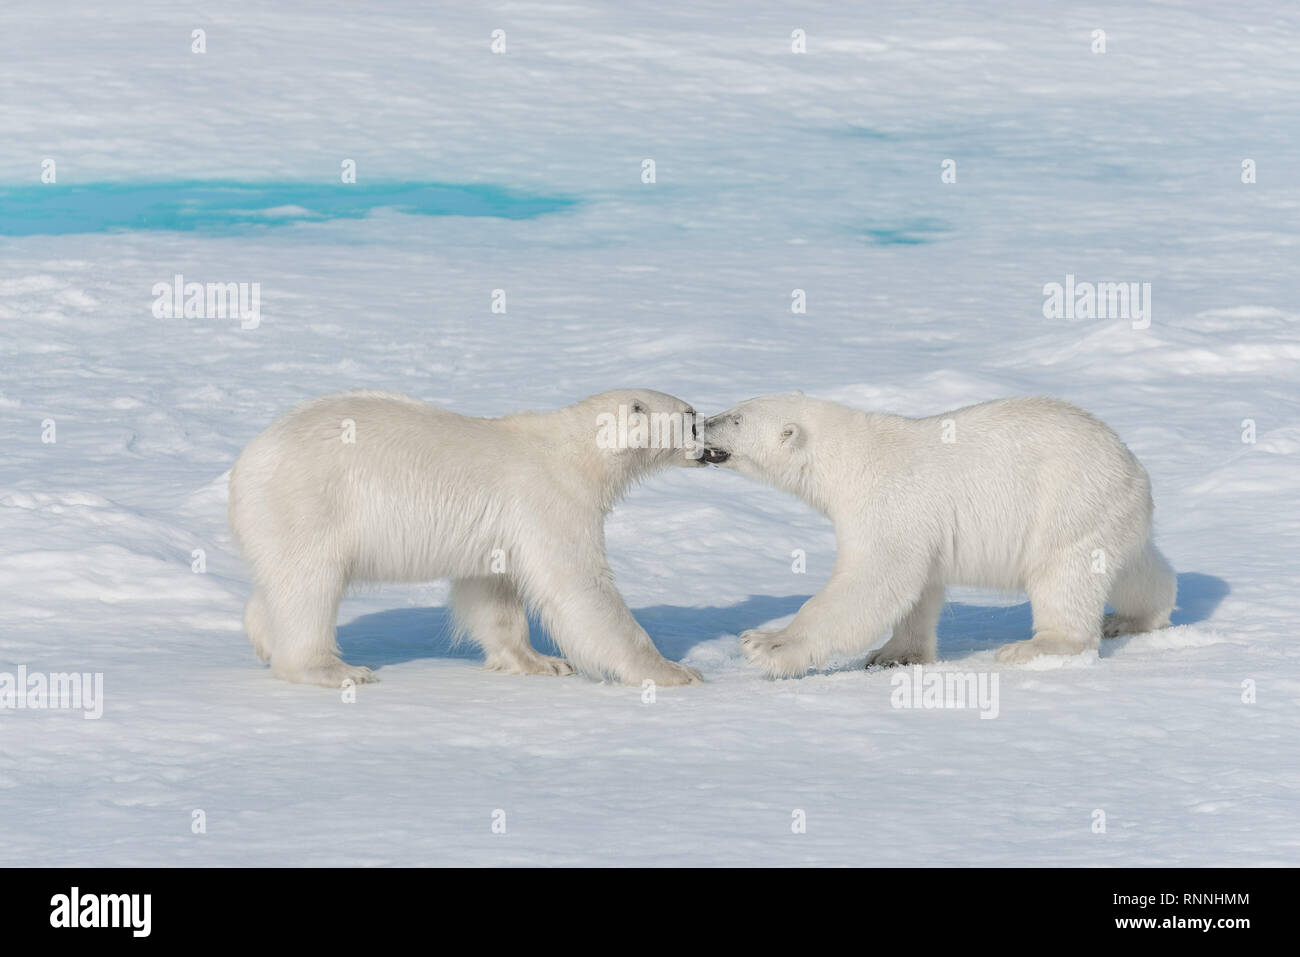 Two young wild polar bear cubs playing on pack ice in Arctic sea, north of Svalbard Stock Photo